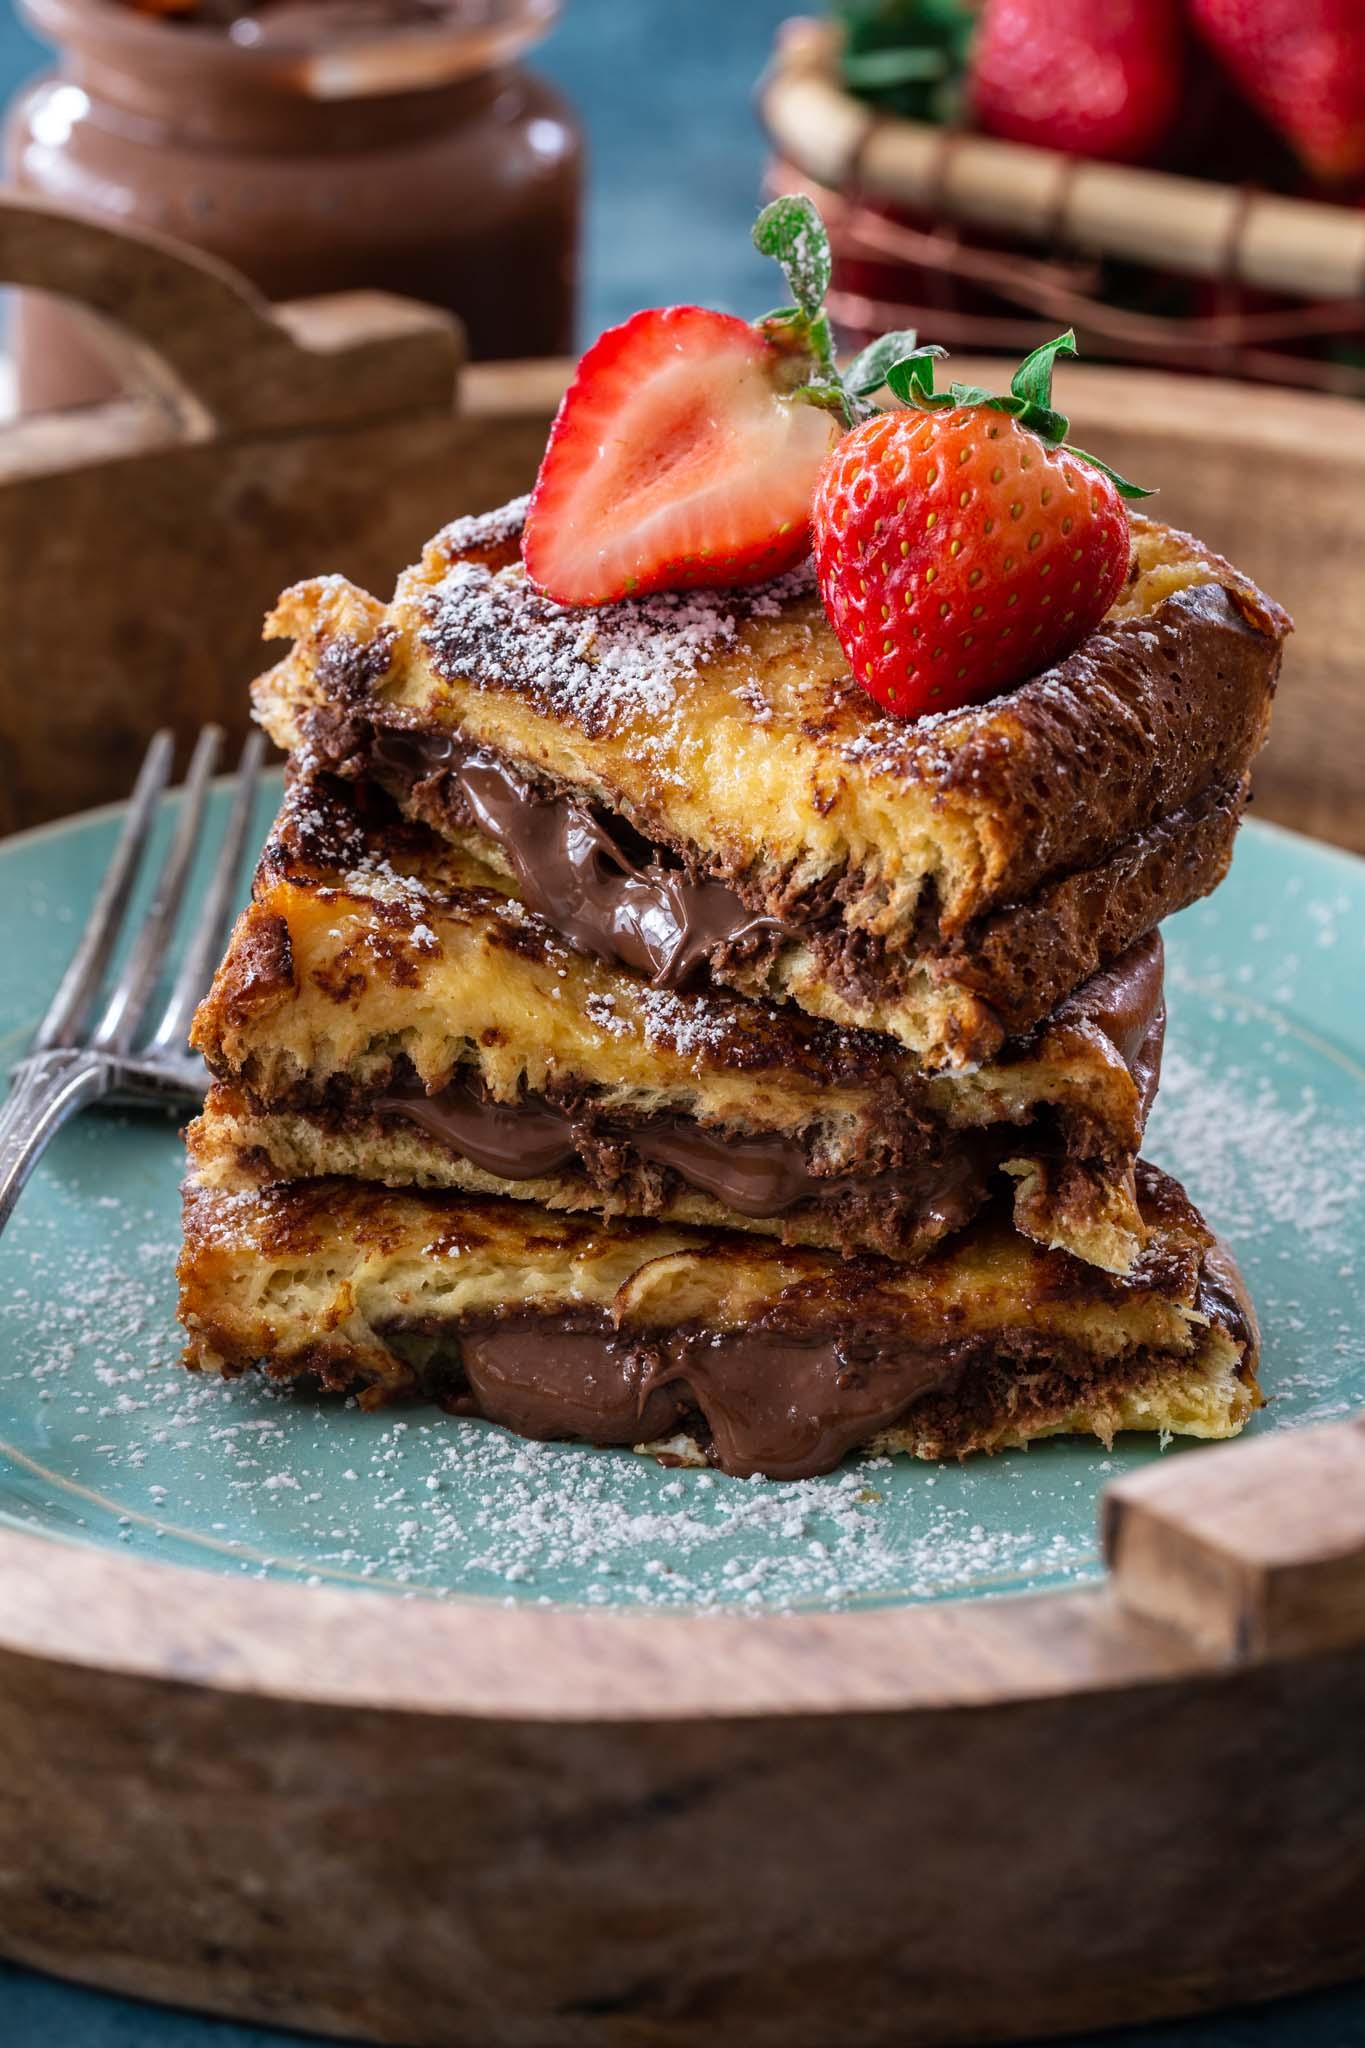 Nutella stuffed French toast slices